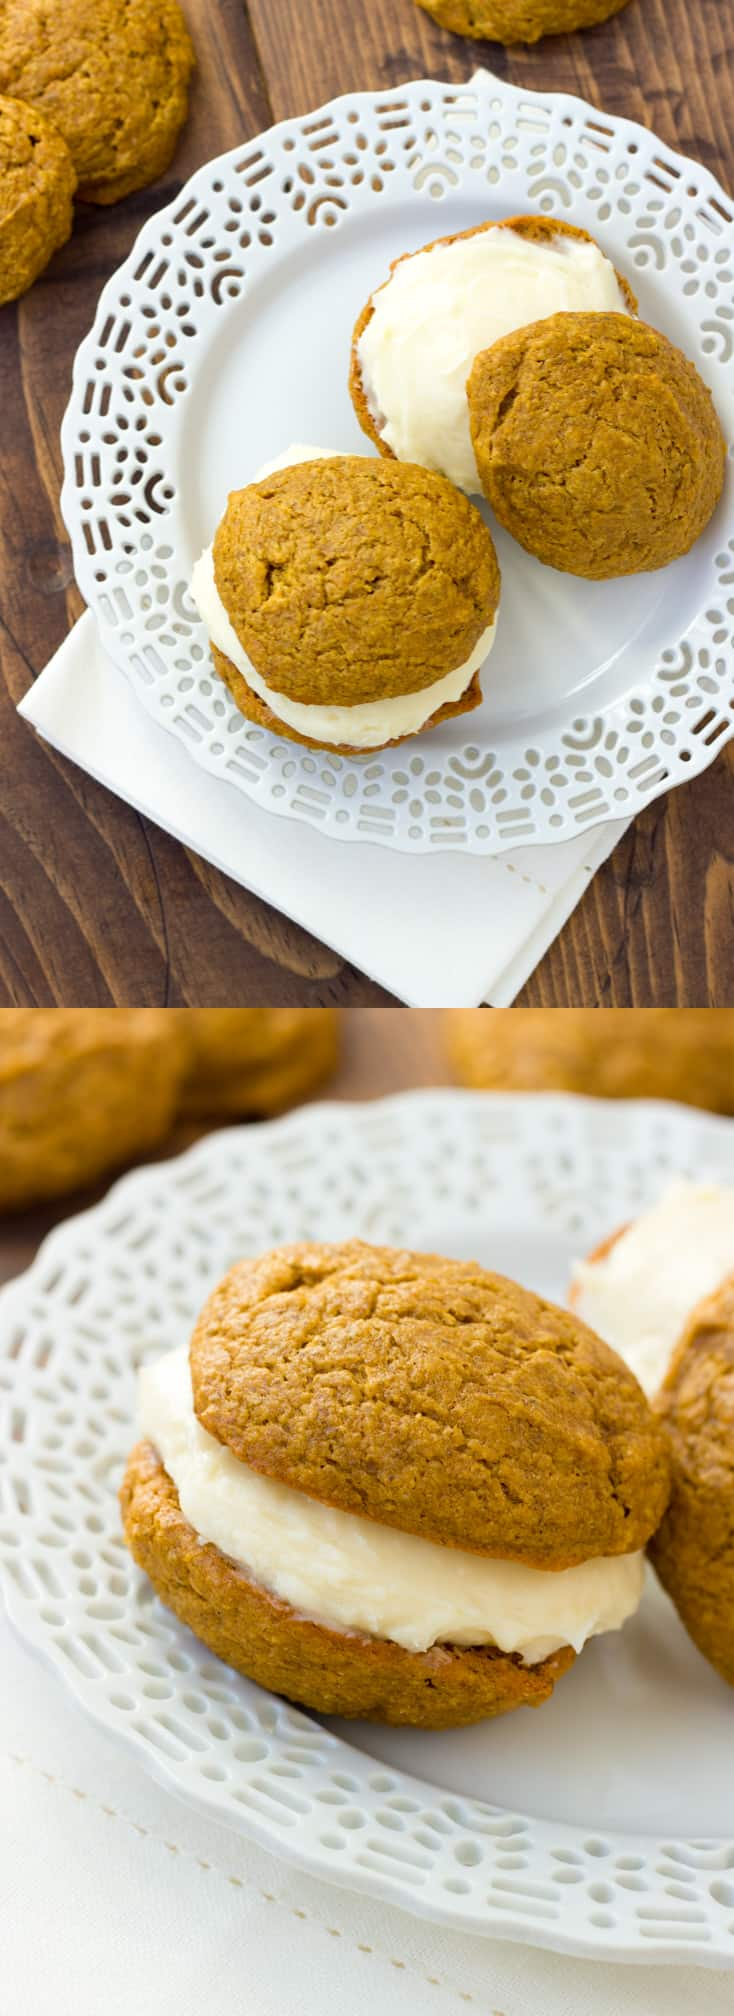 Gluten-Free Pumpkin Whoopie Pies! Two moist, spiced pumpkin cookies filled with thick cream cheese frosting. A fall favorite! (Dairy-Free Option)